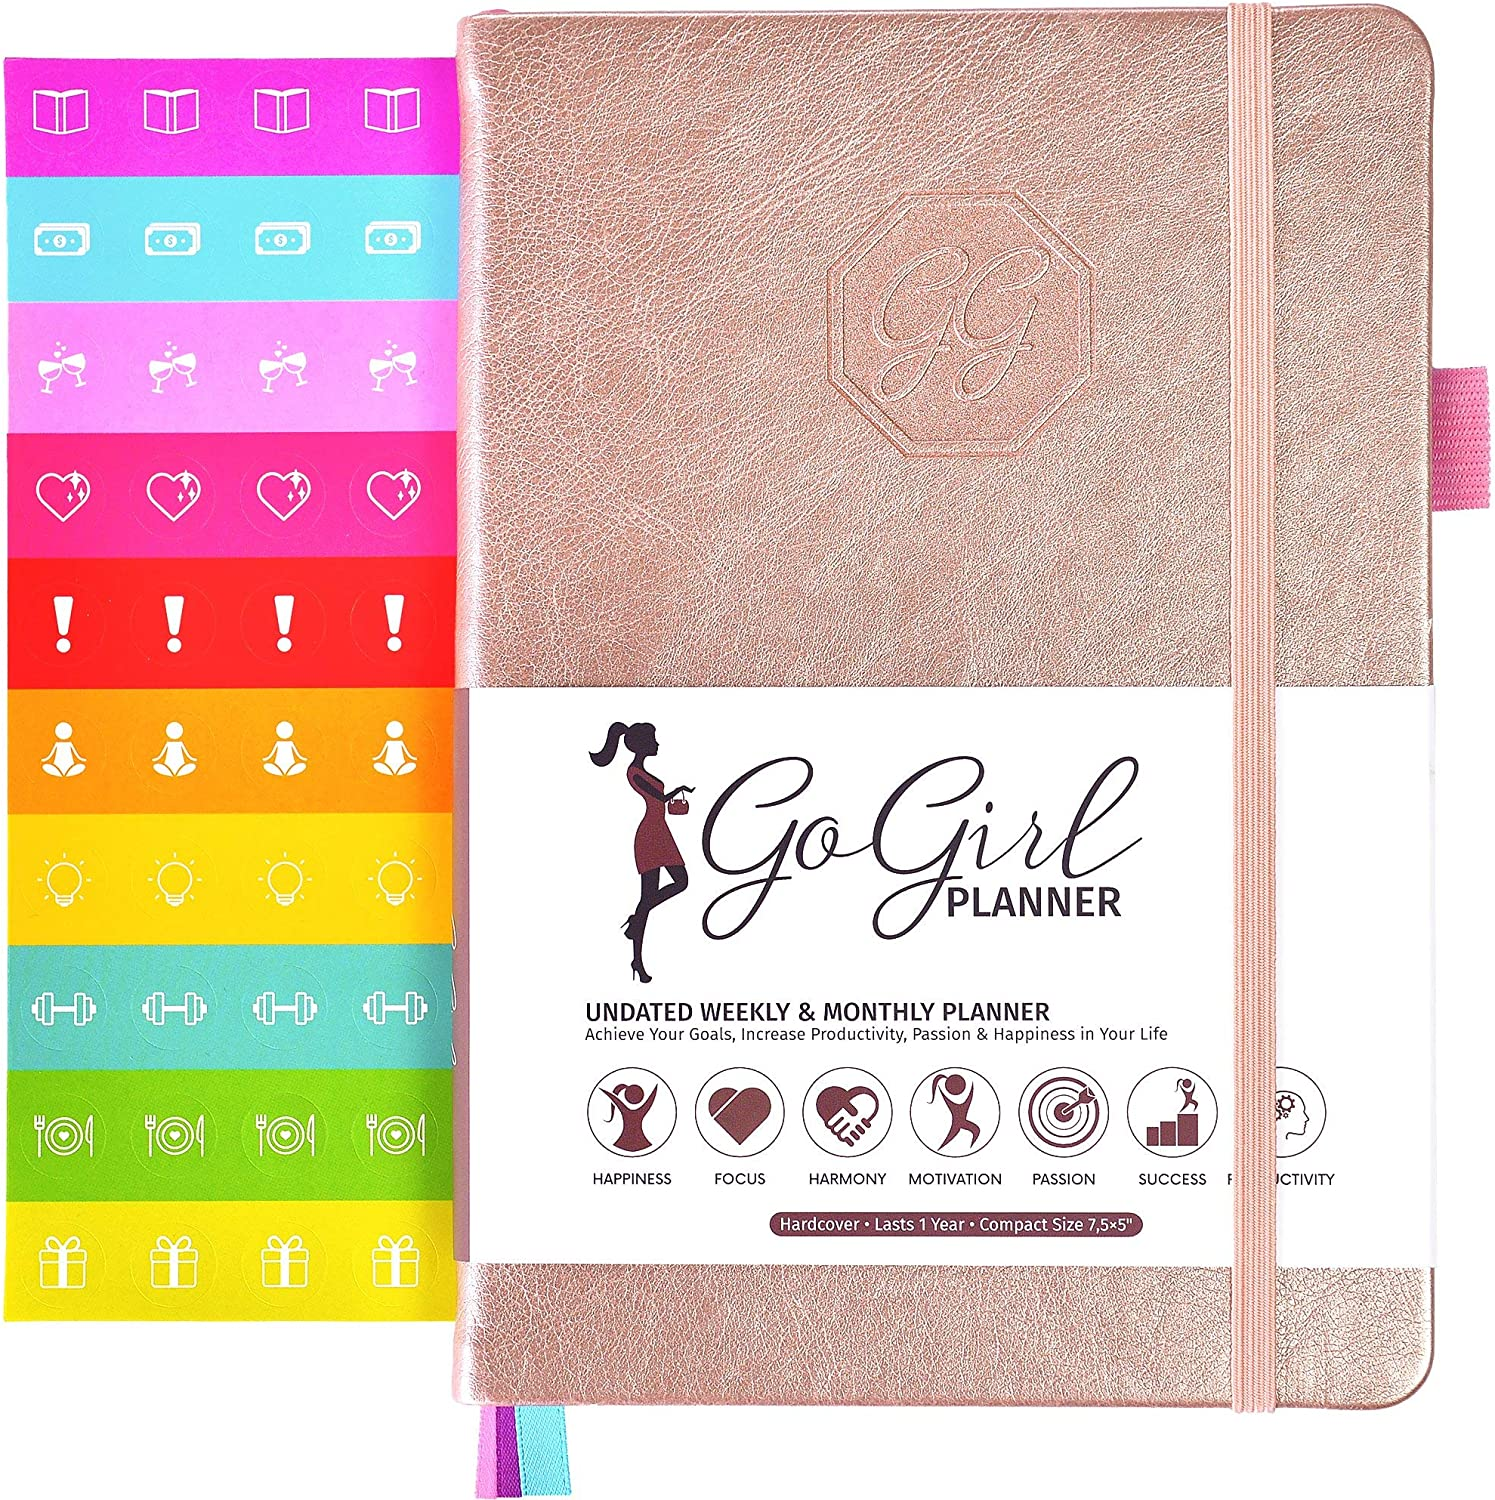 Start Anytime GoGirl Planner and Organizer for Women Goals Journal /& Agenda to Improve Time Management Compact Size Weekly Planner Lasts 1 Year Productivity /& Live Happier Undated Light Blue